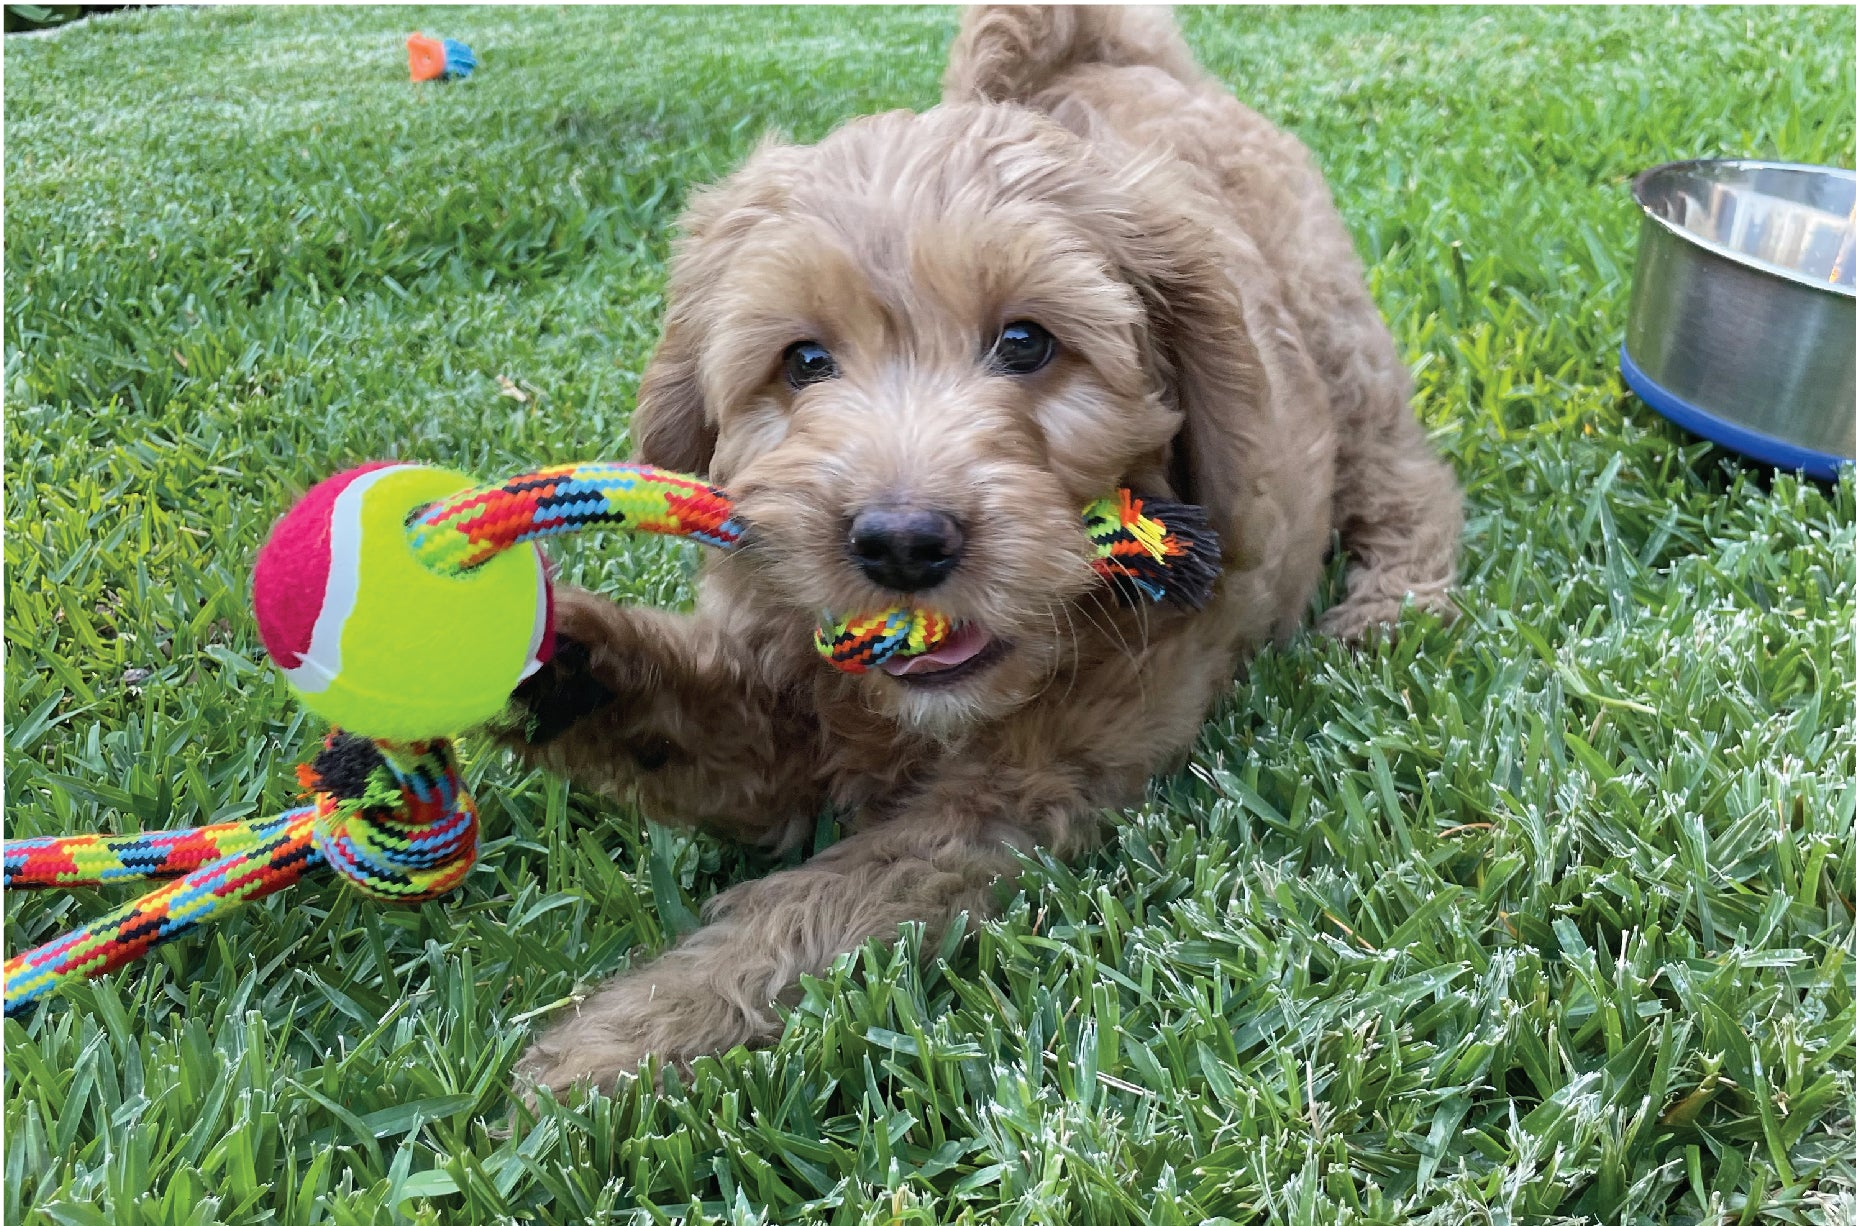 Cute puppy chewing Kazoo rope toy whilst laying on grass